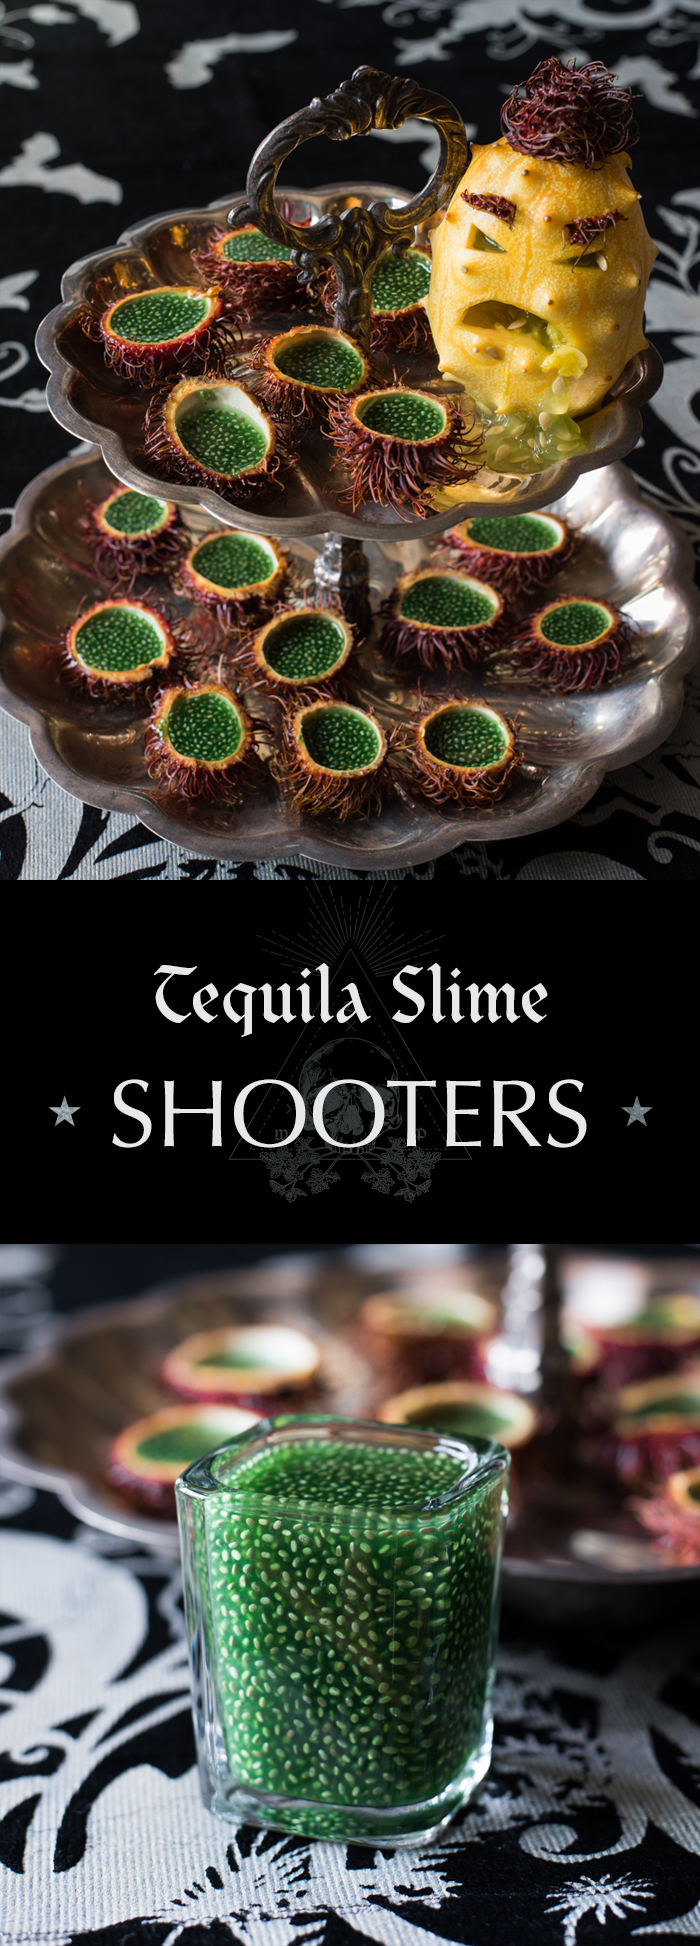 Tequila Slime Shooter - Tart lime and tequila come together in this sweet and slimy shooter. All natural slime courtesy of the almighty chia seed!